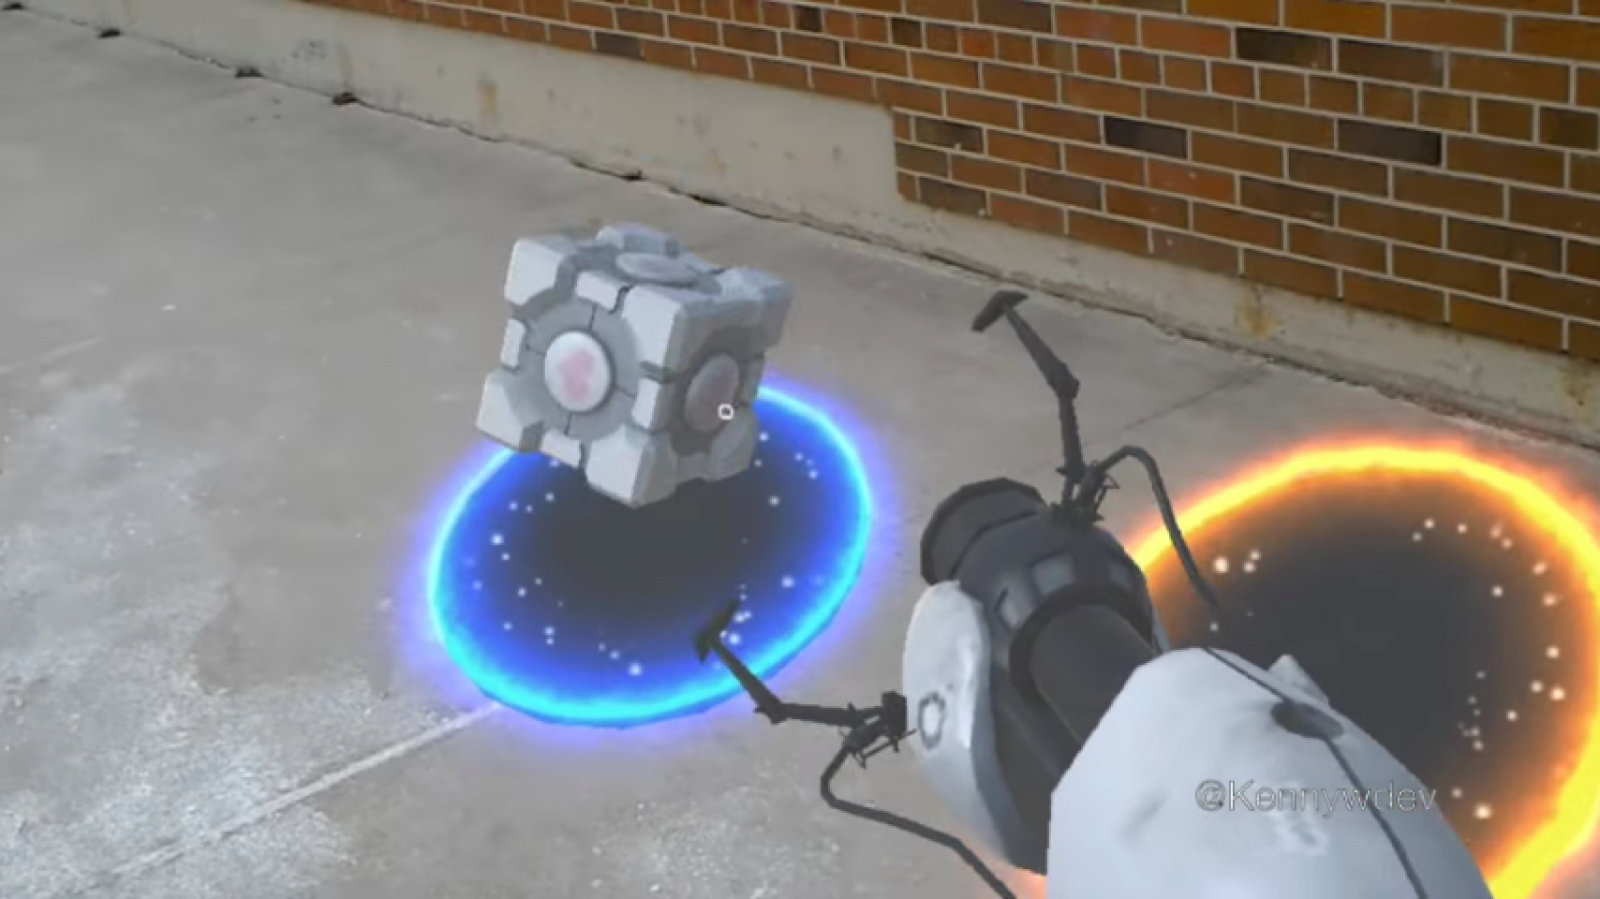 Portal, la demo fan made per HoloLens